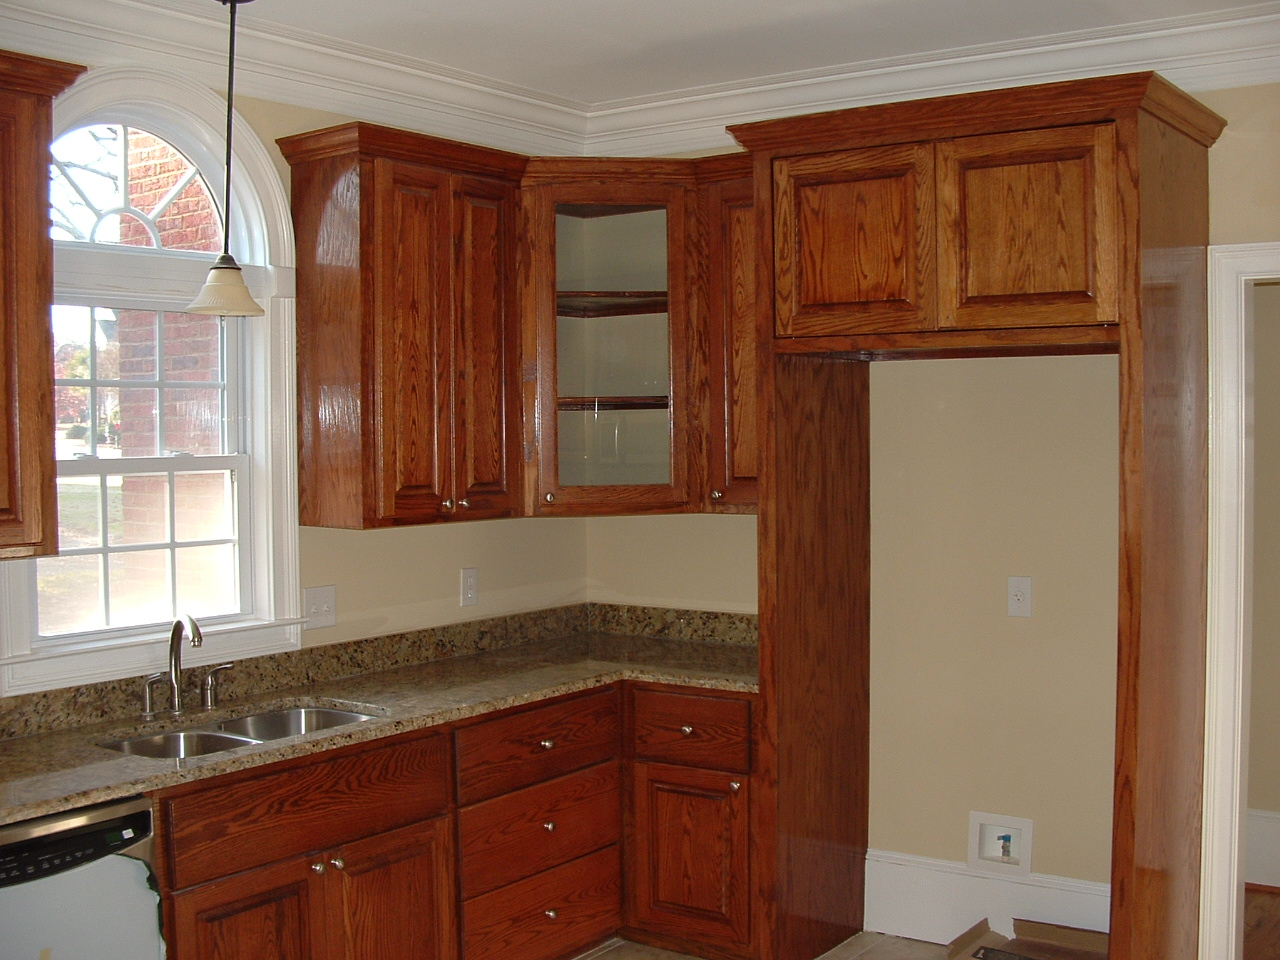 Kitchen free standing cabinets Photo - 1